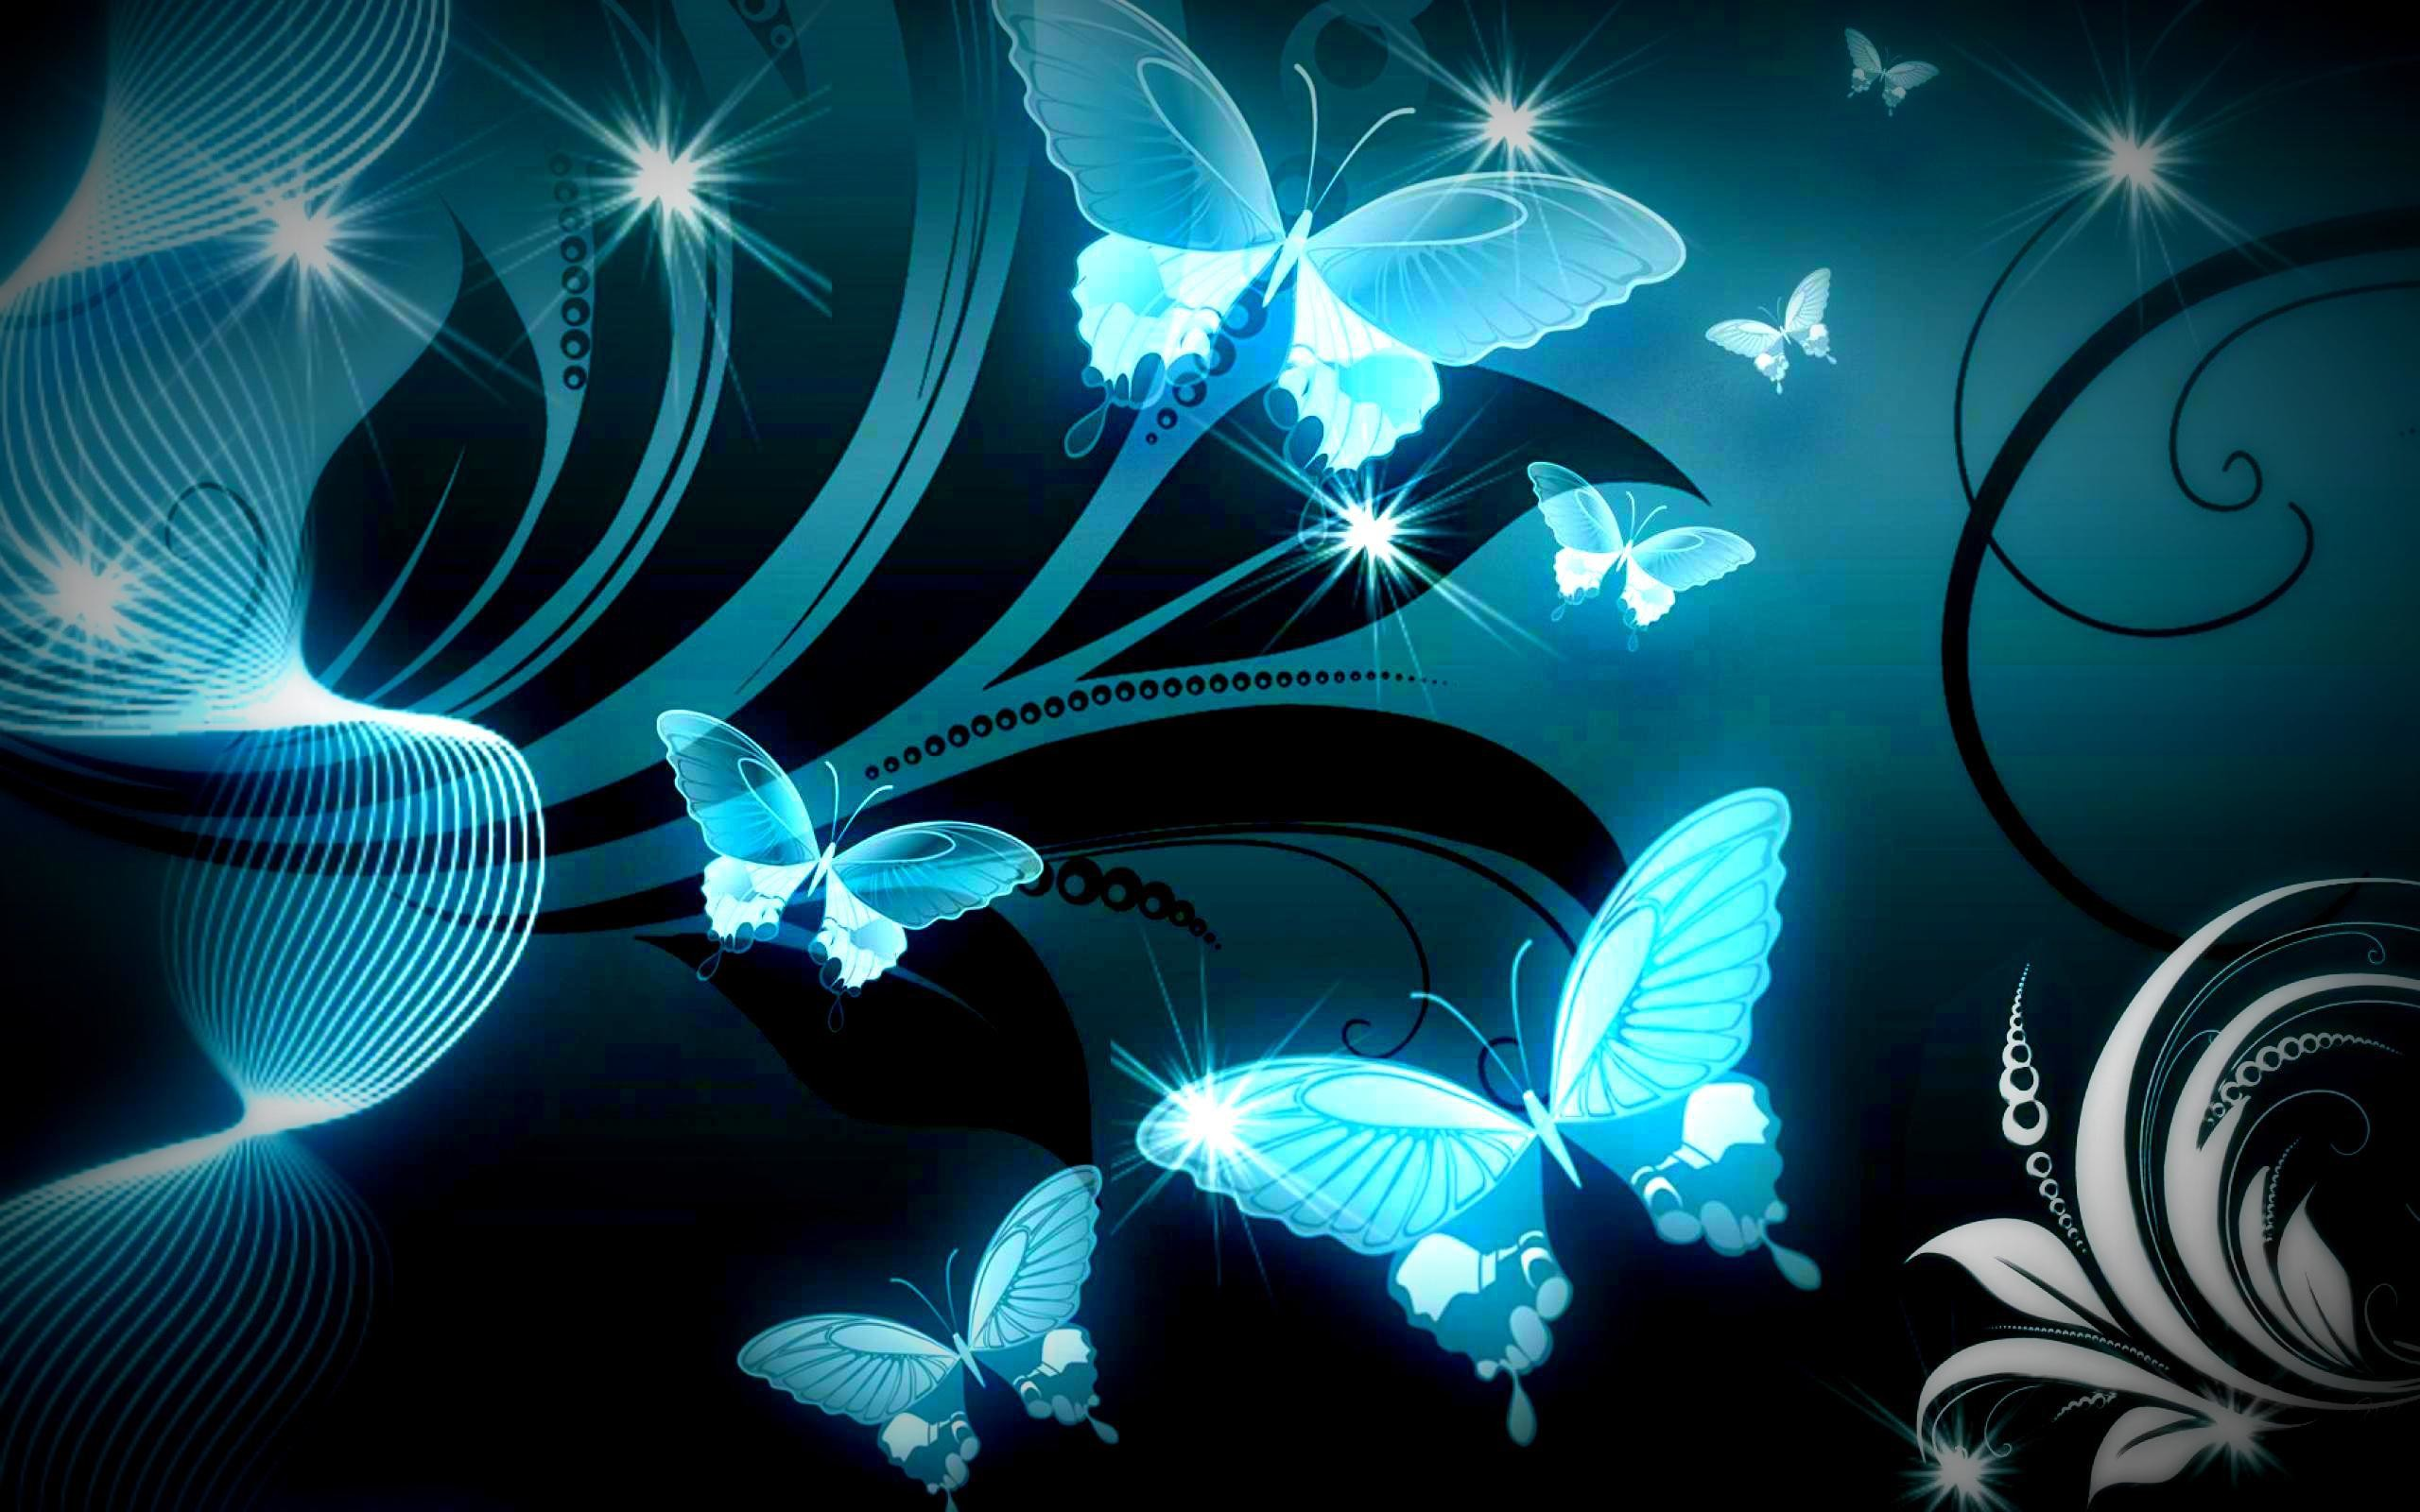 2560x1600 SPARKLE BLUE BUTTERFLIES WALLPAPER